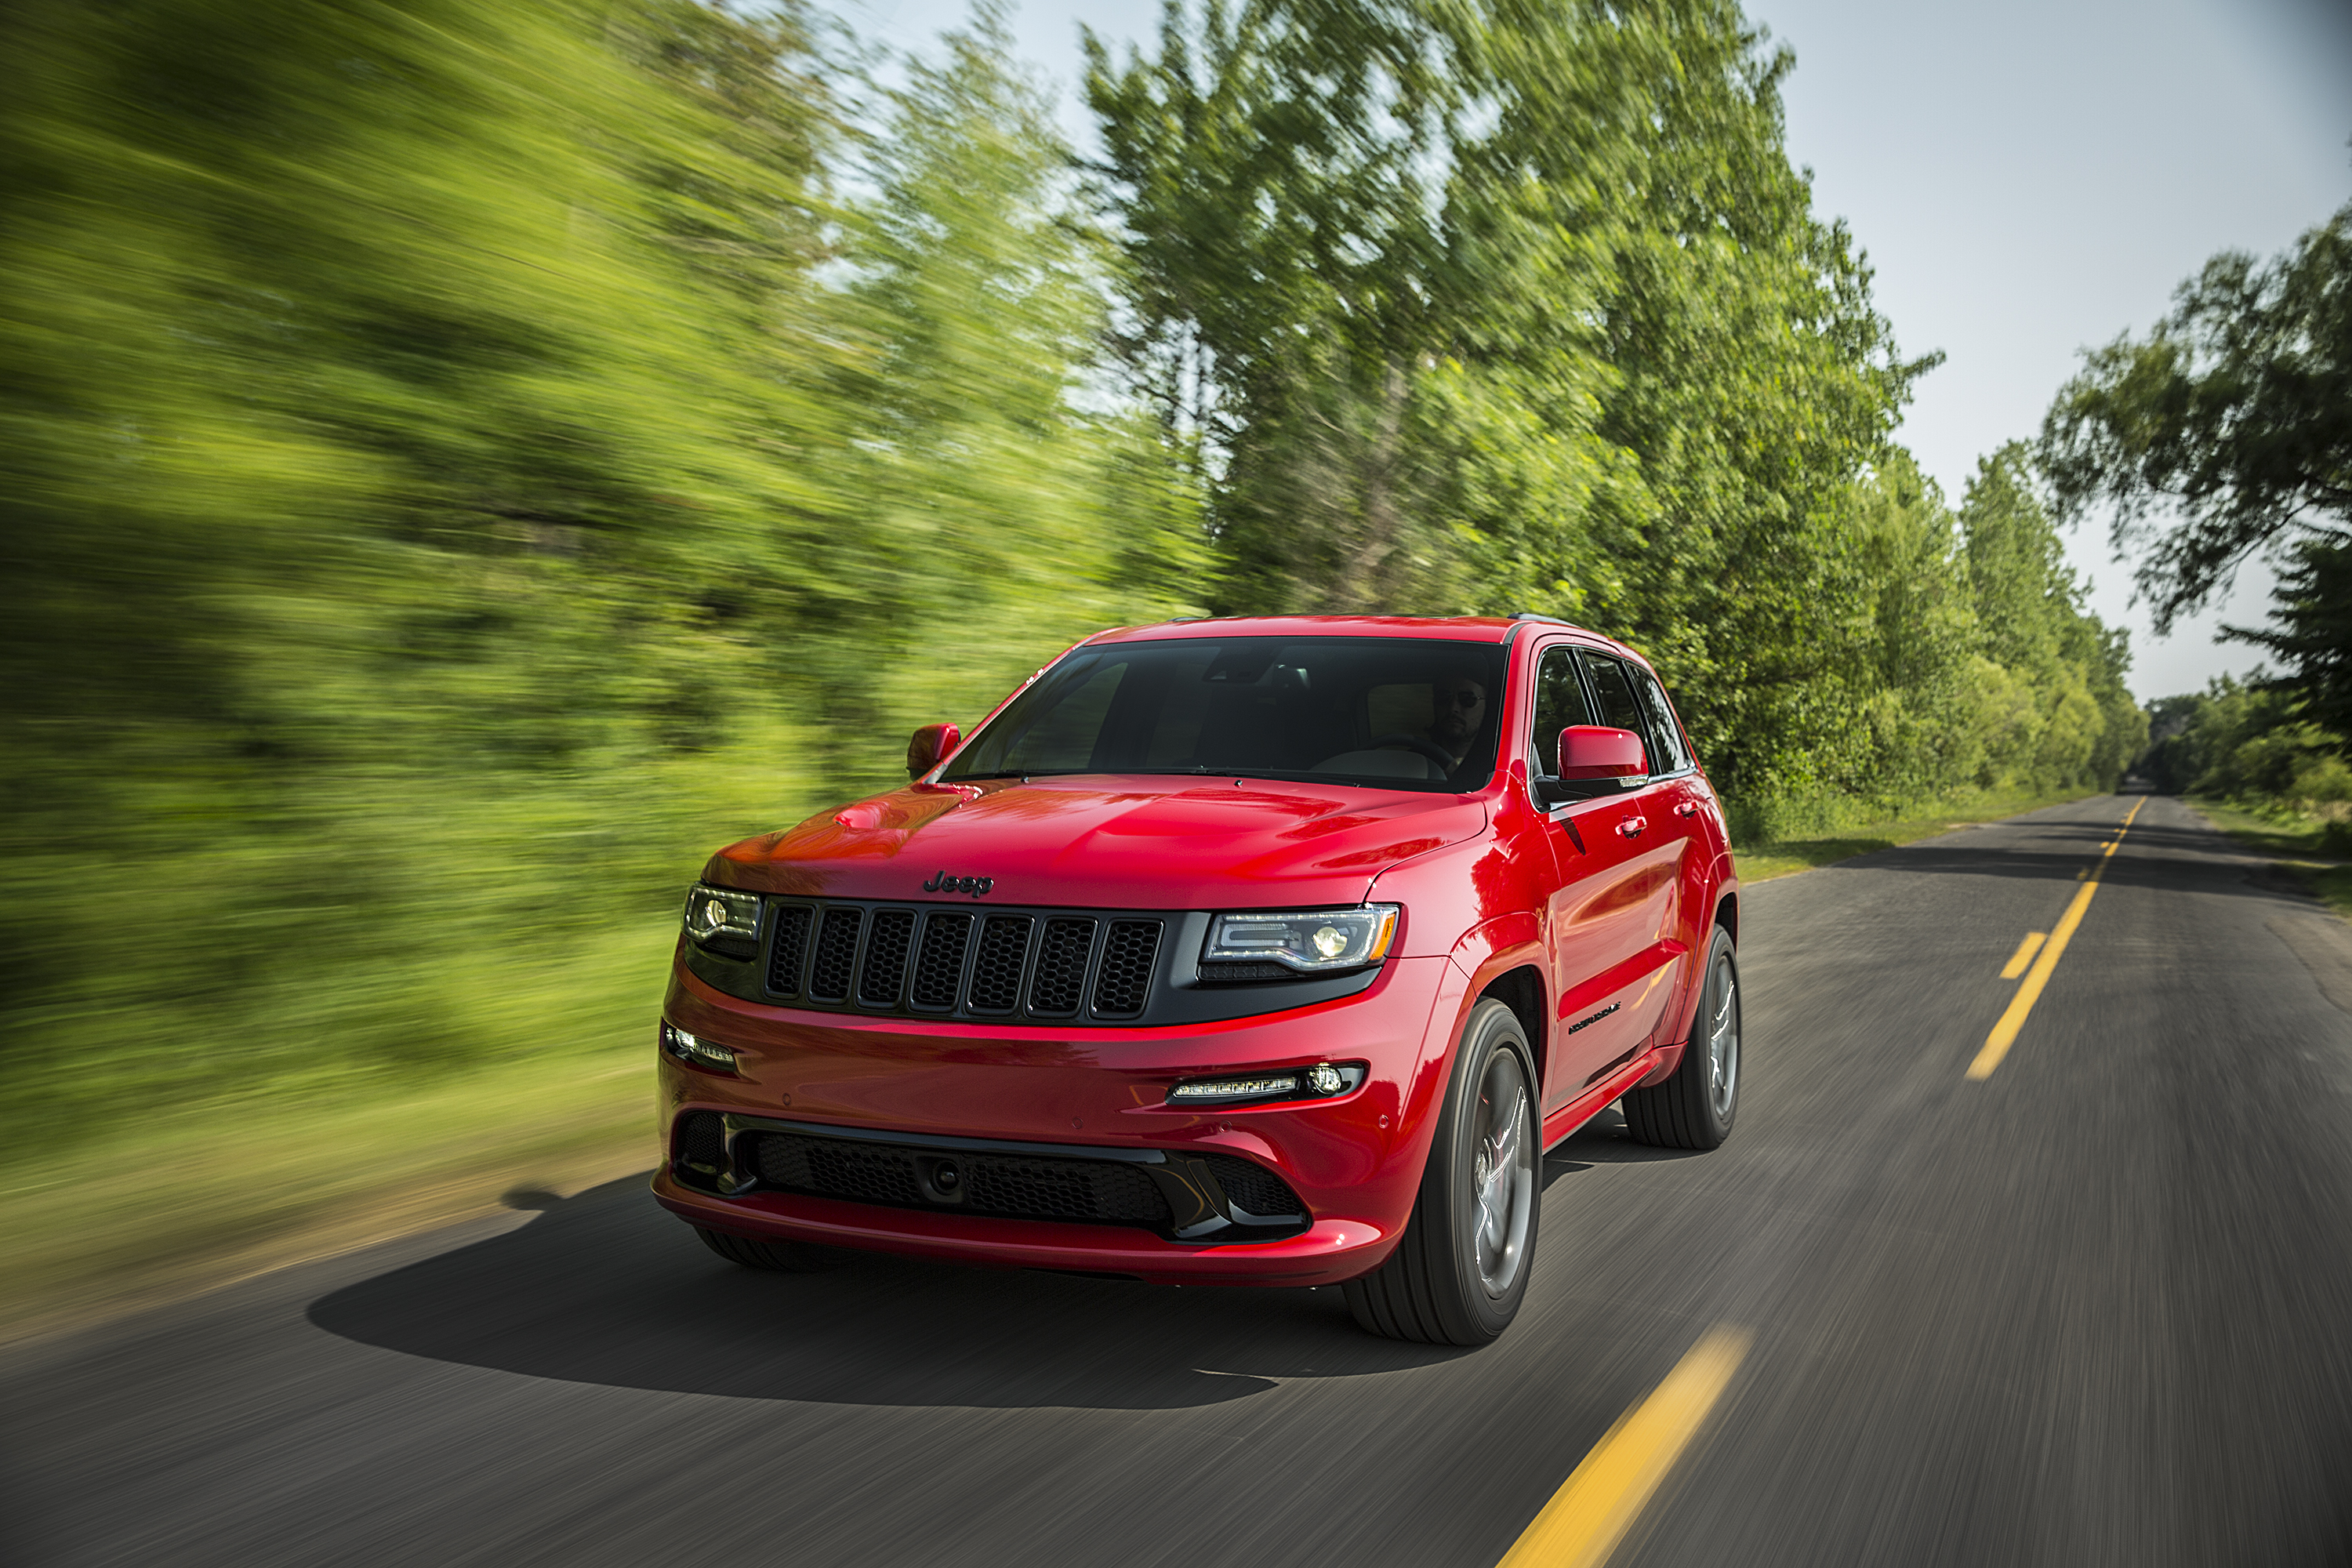 2015 Jeep Grand Cherokee Srt Is No Hellcat Autoevolution